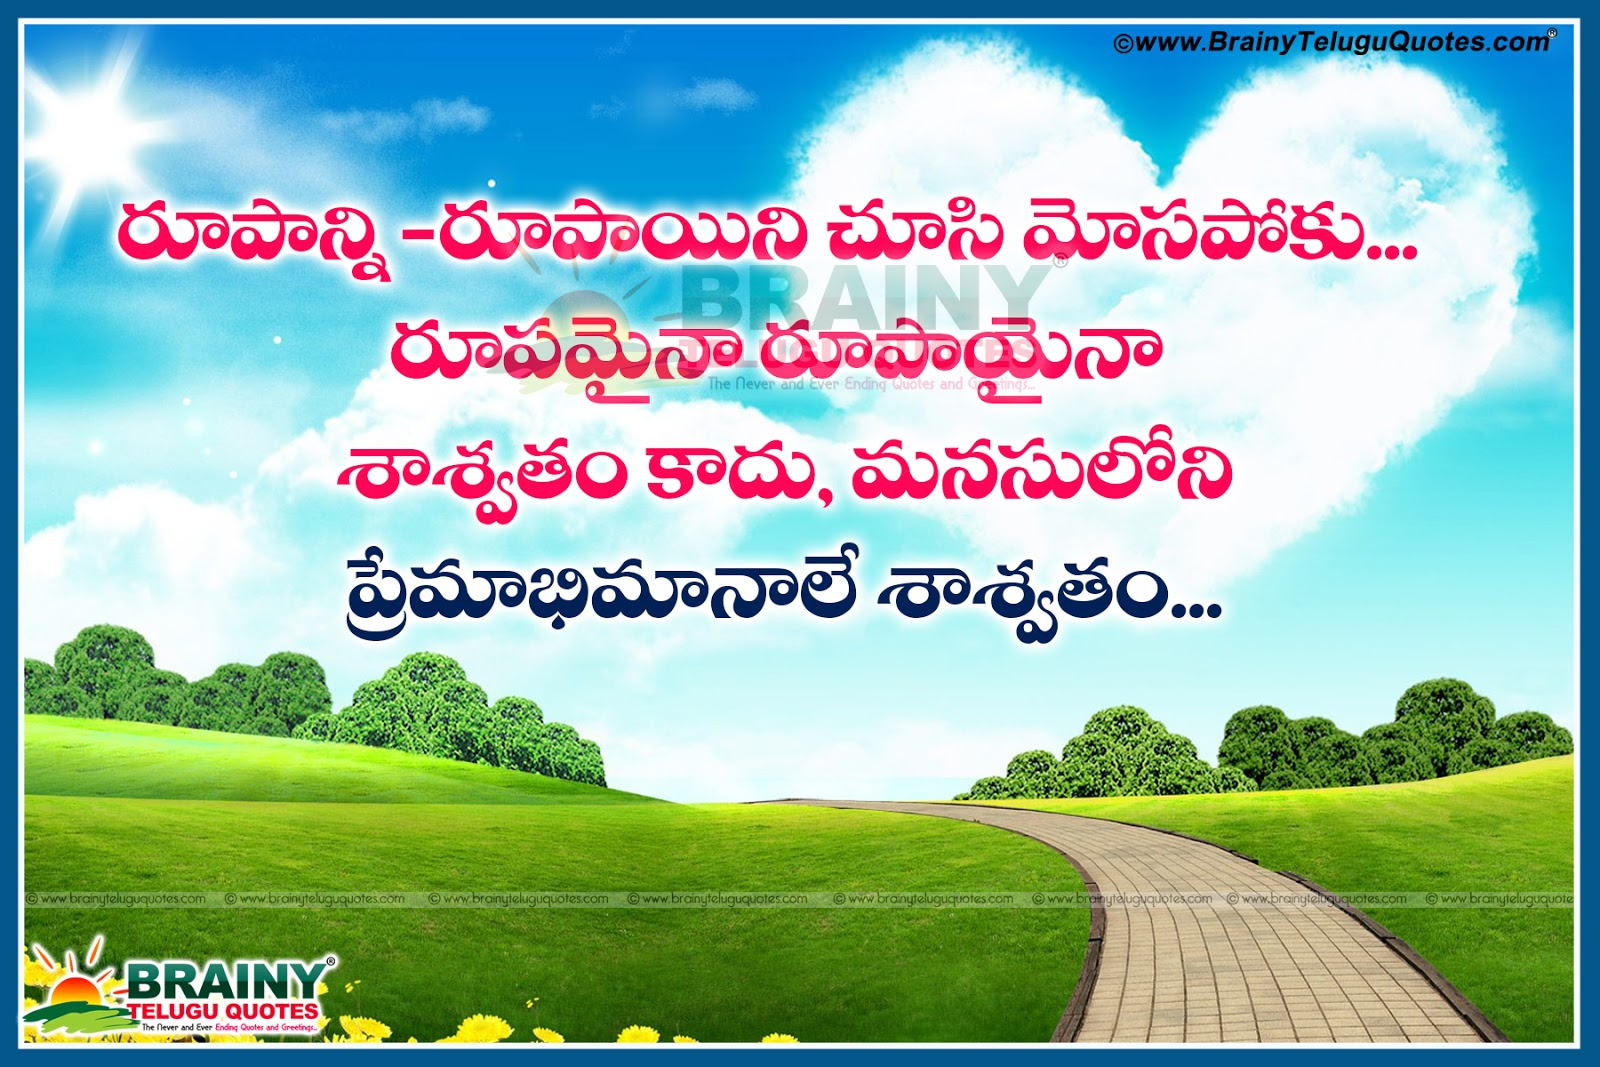 Quotes About Money And Friendship Amusing Don't Loose Your Loved One Because Of Money Quotes In Telugu With